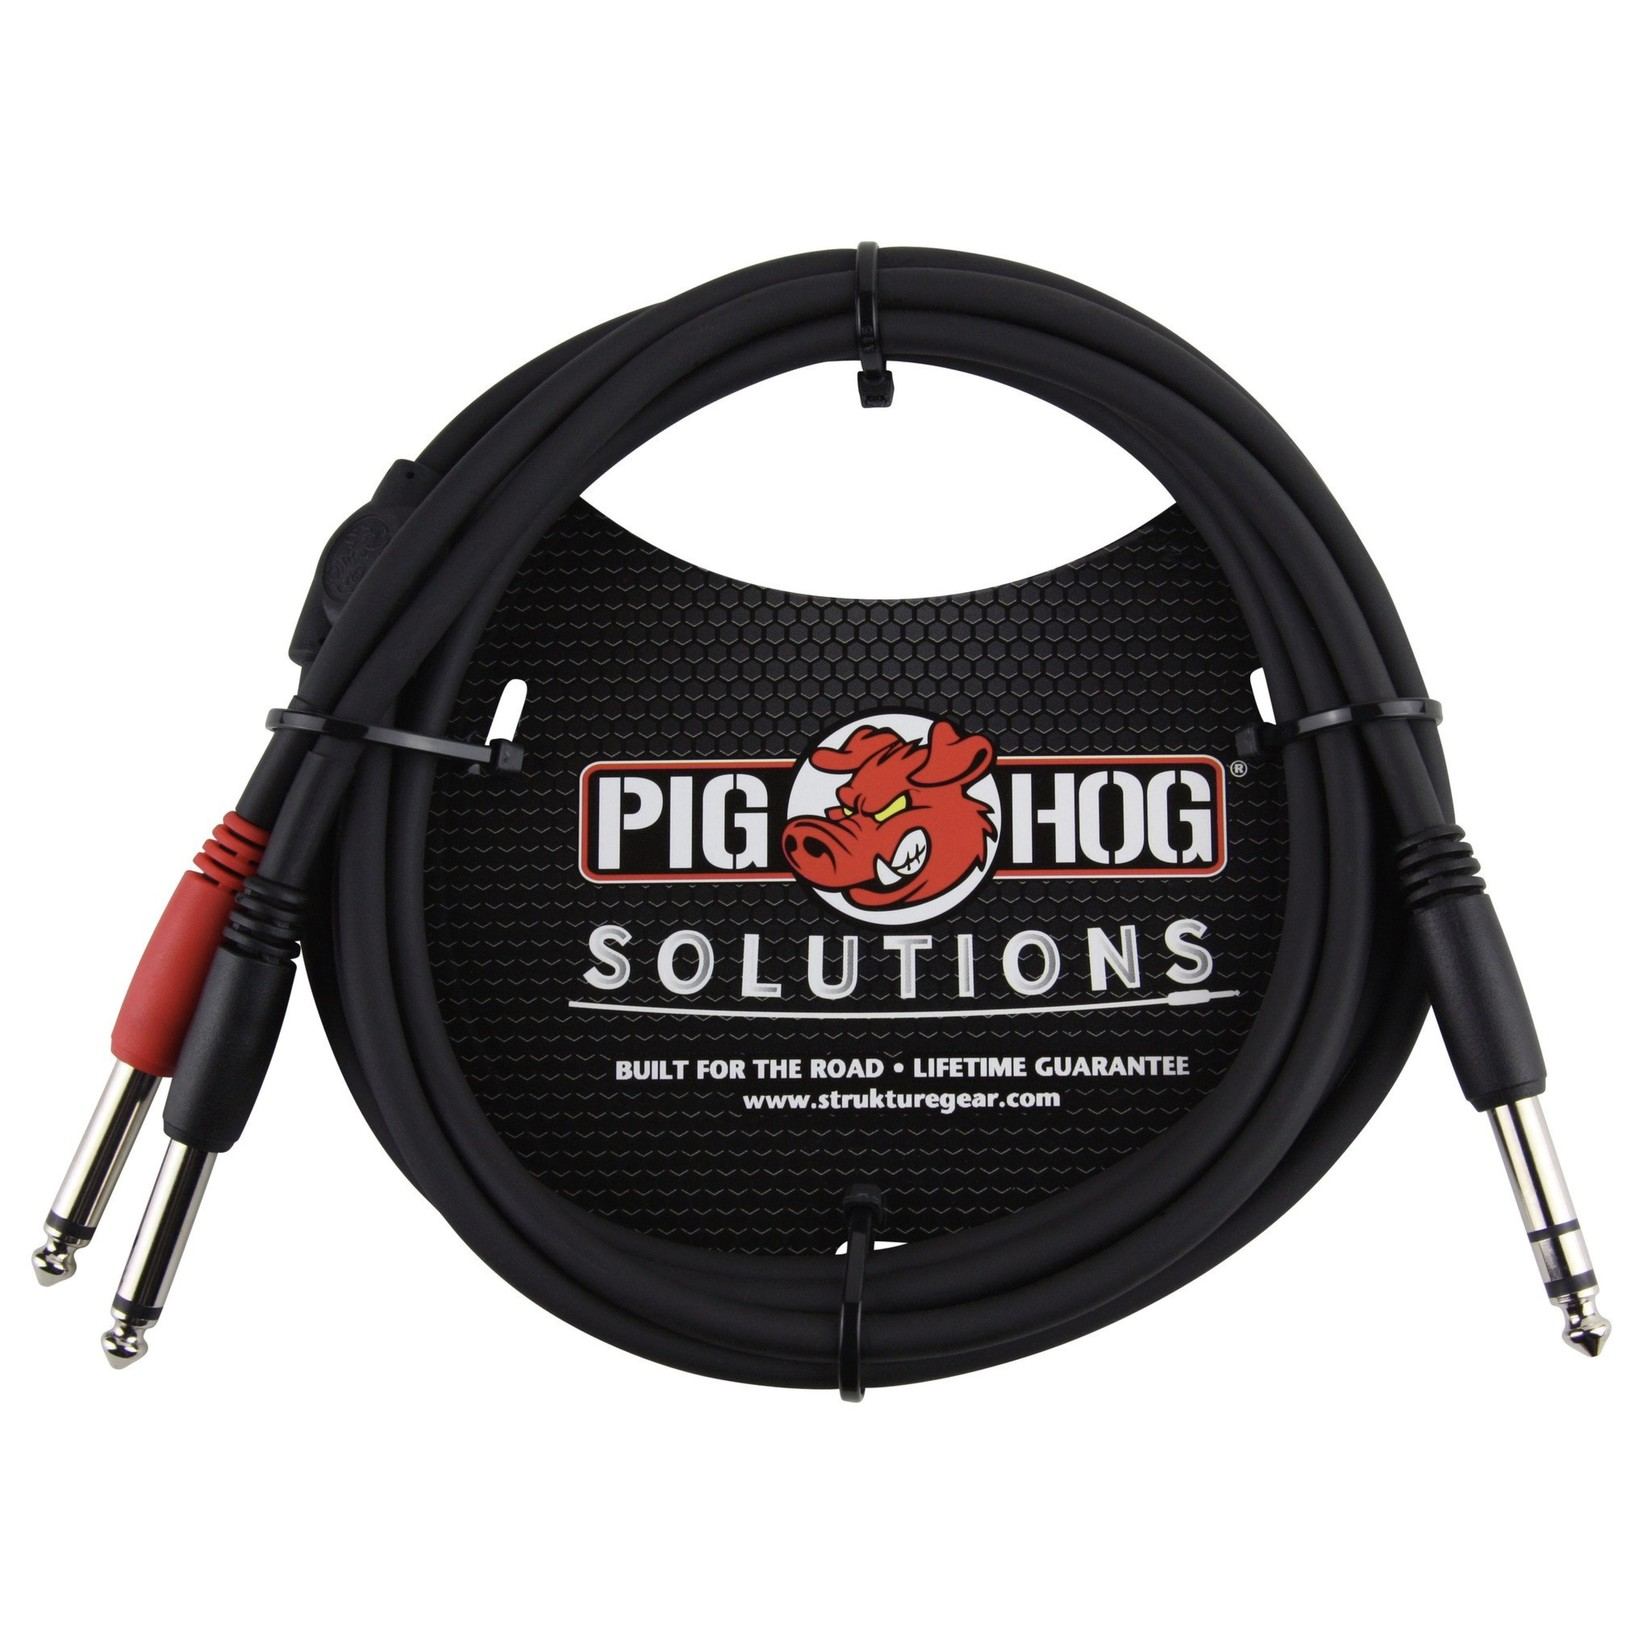 "Pig Hog Pig Hog Solutions 6-Foot TRS(M) to Dual 1/4"" TS(M) Insert Cable, PYIC06"